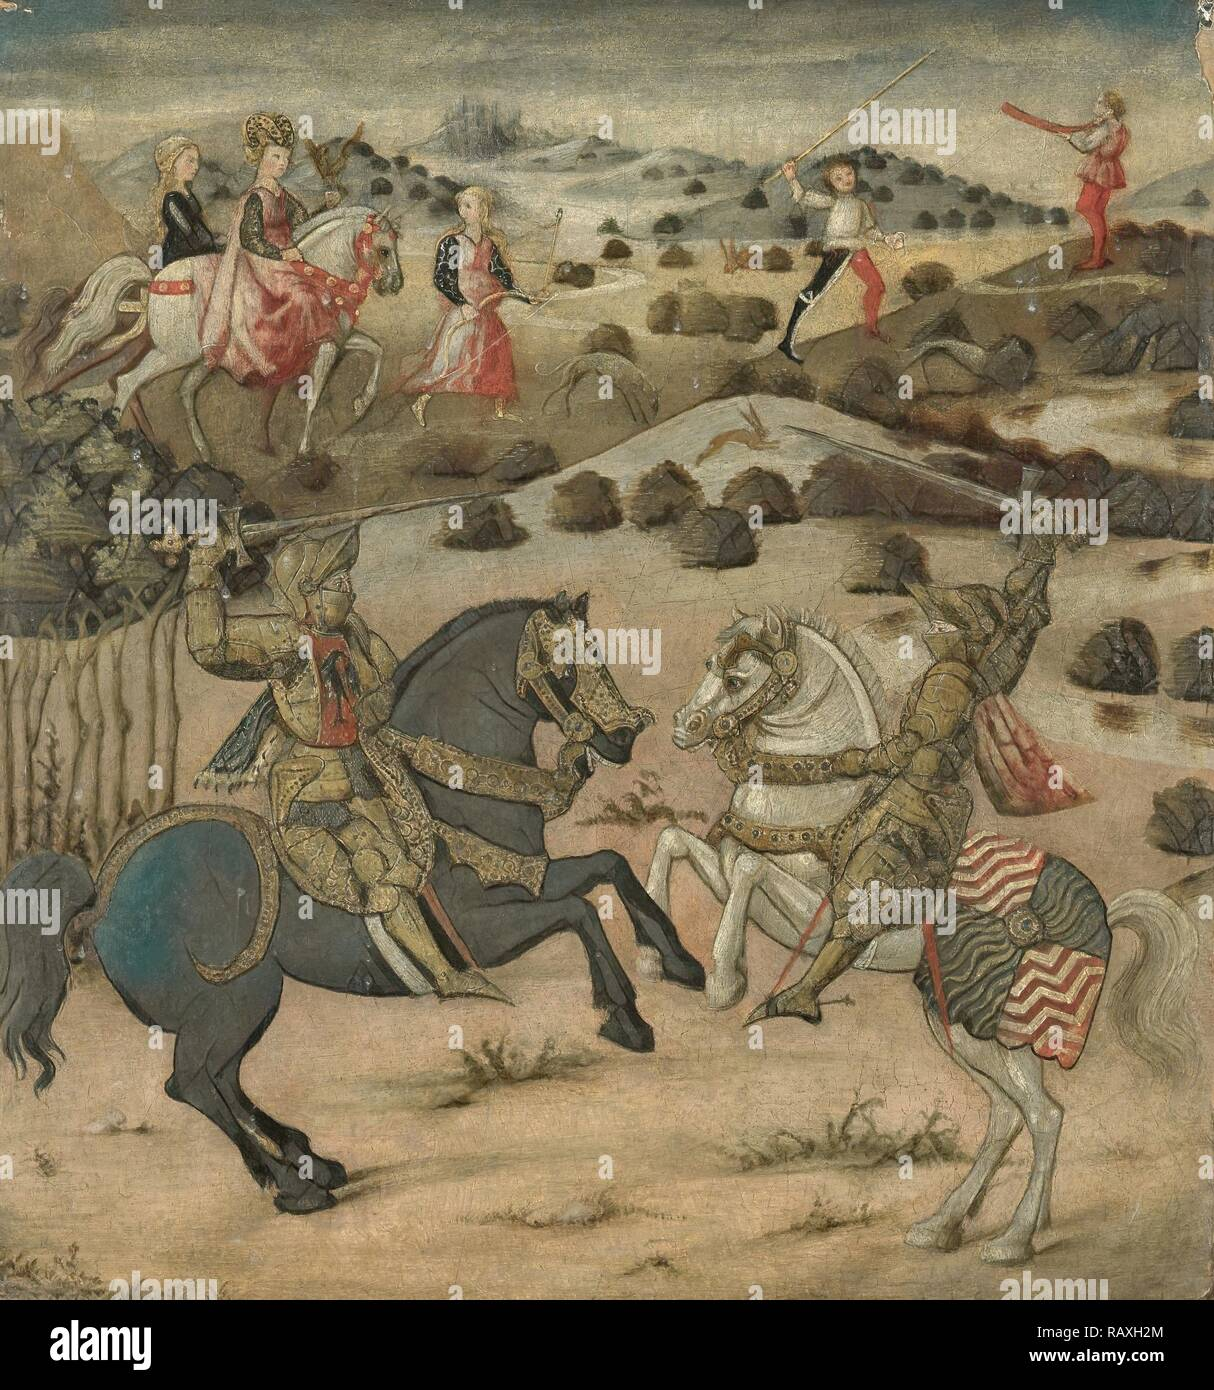 Legend of a Knight (end panel of a cassone), Anonymous, 1450 - 1474. Reimagined by Gibon. Classic art with a modern reimagined - Stock Image